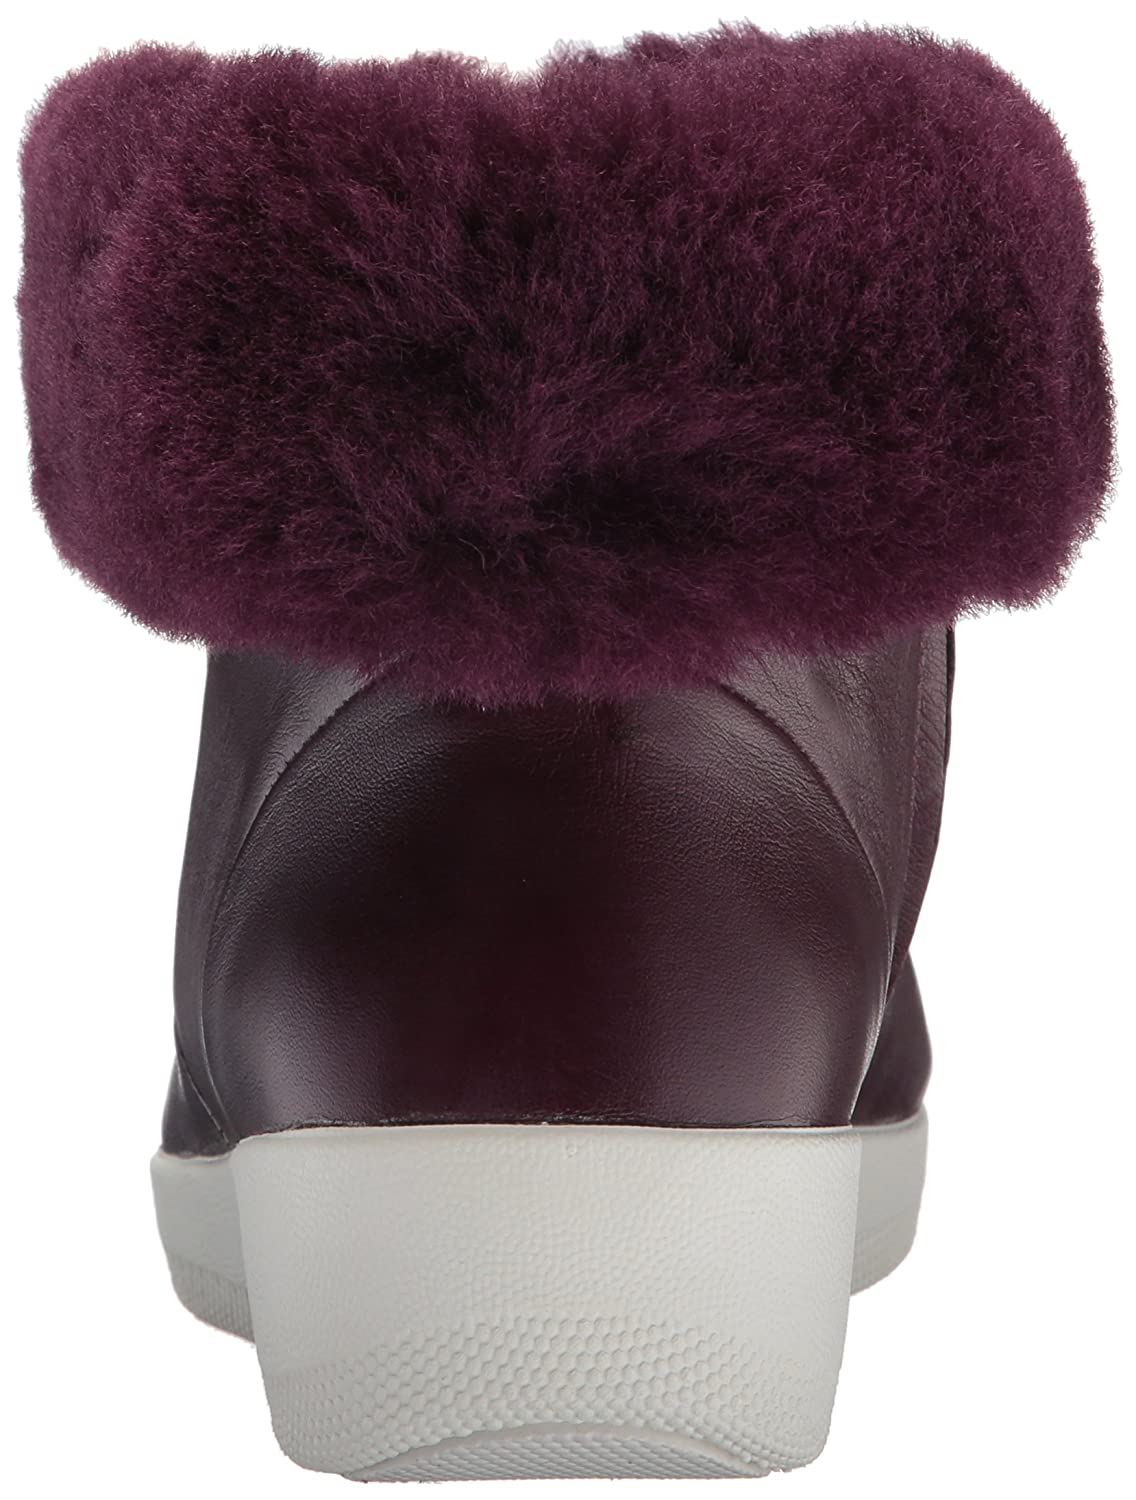 FitFlop Women's 8.5 Skatebootie Leather Shearling Ankle Boot B0764LYW9C 8.5 Women's B(M) US|Deep Plum 908df4